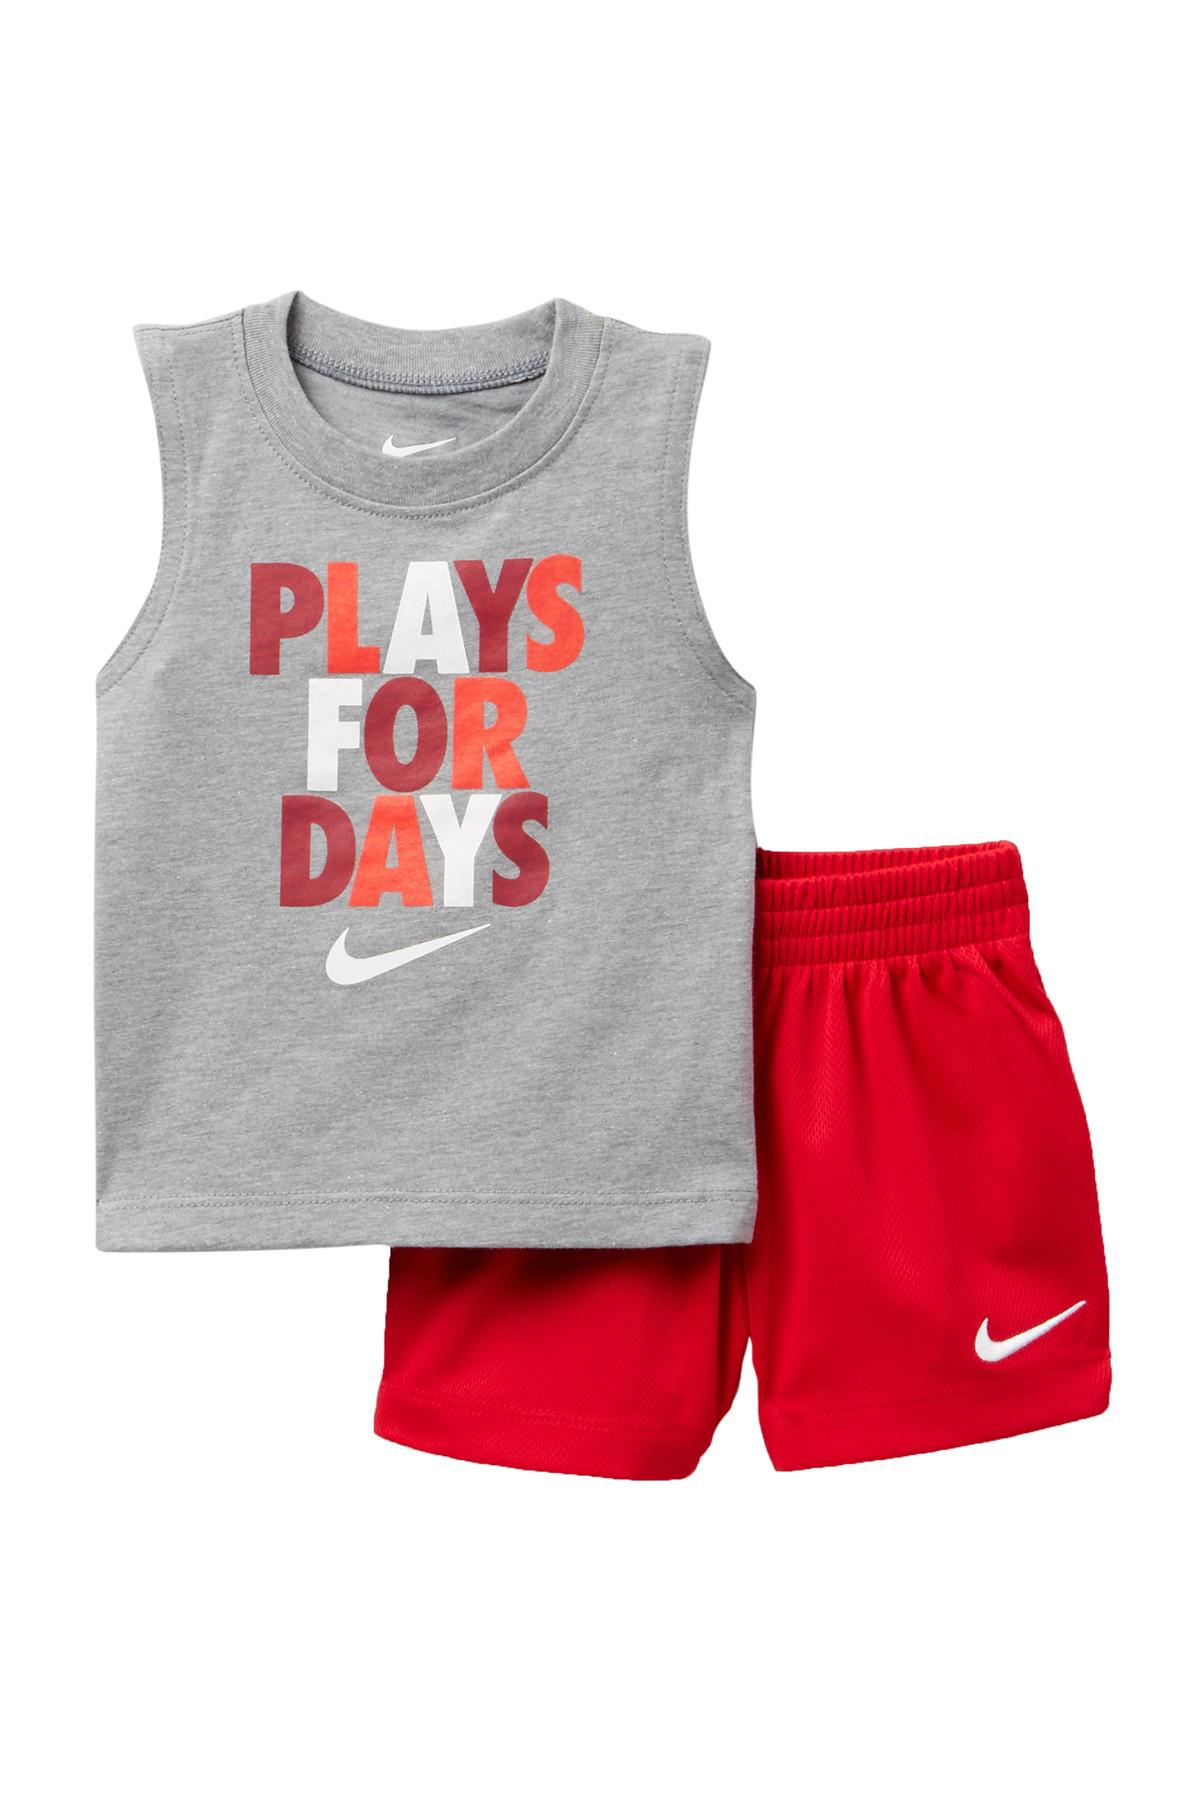 e710cc4446f51 Nike Plays 4 Days Muscle Tee & Shorts Set - 2 Piece (baby Boys) in ...